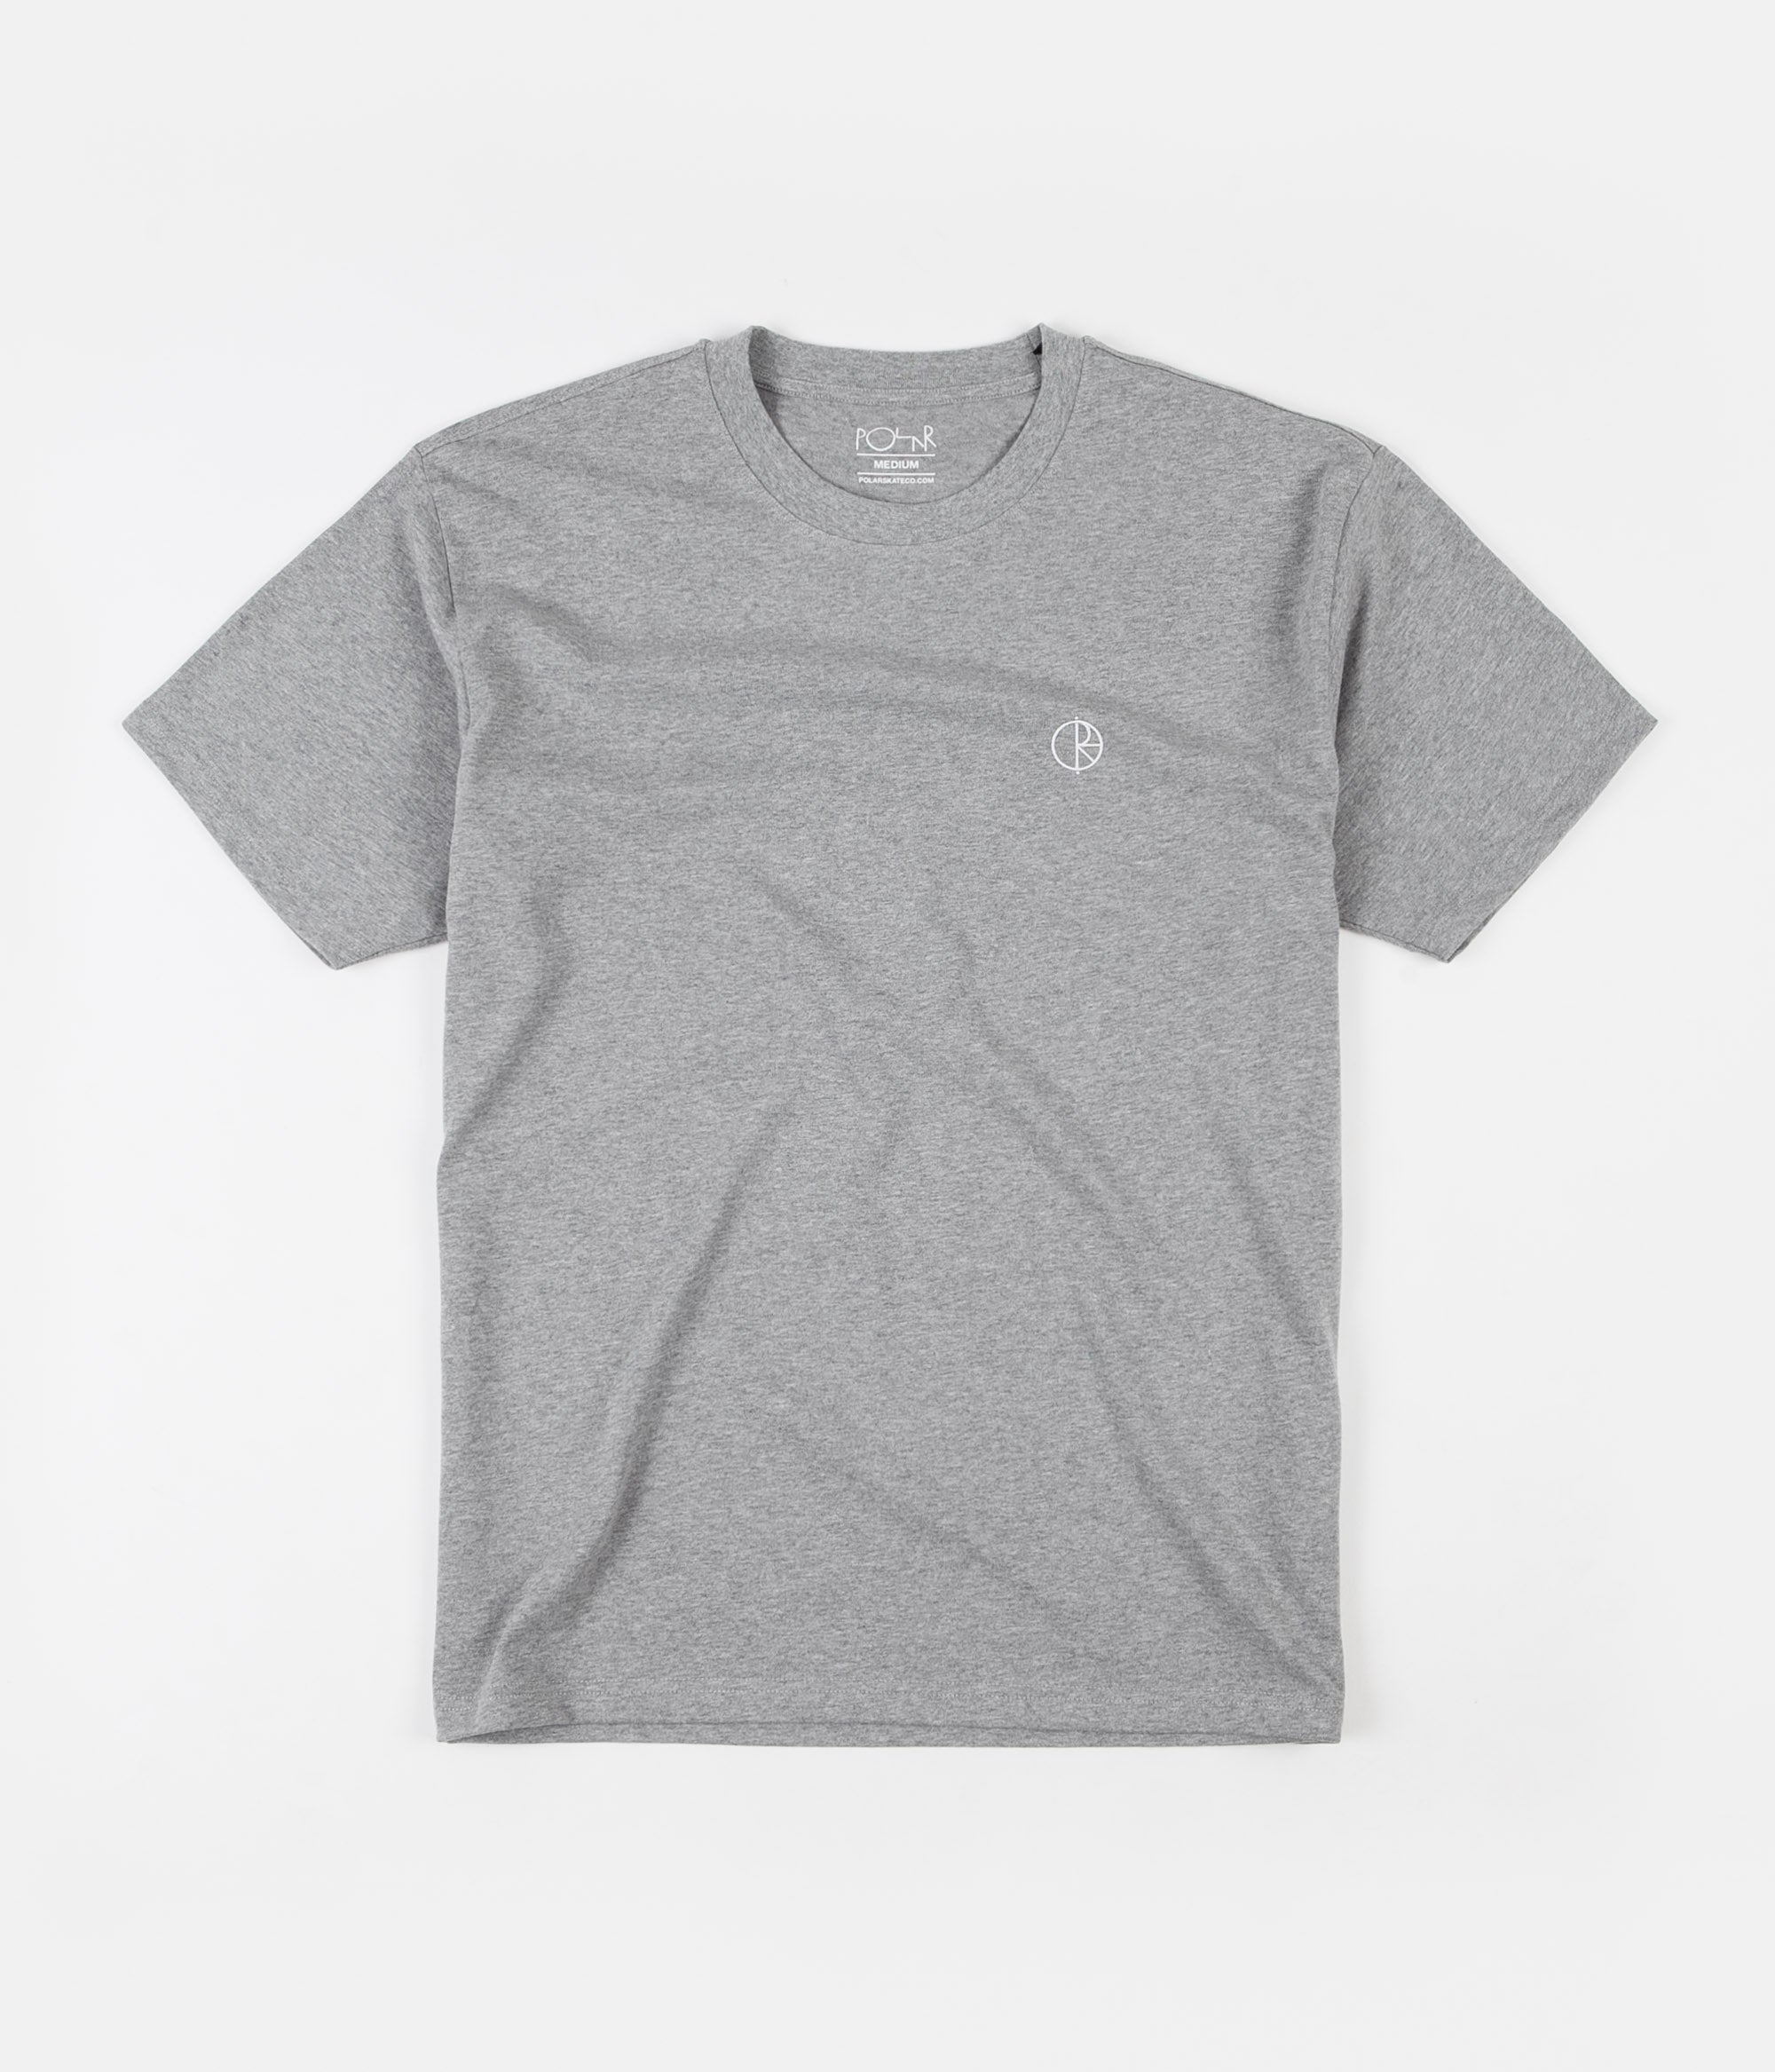 Polar Team T-Shirt - Heather Grey